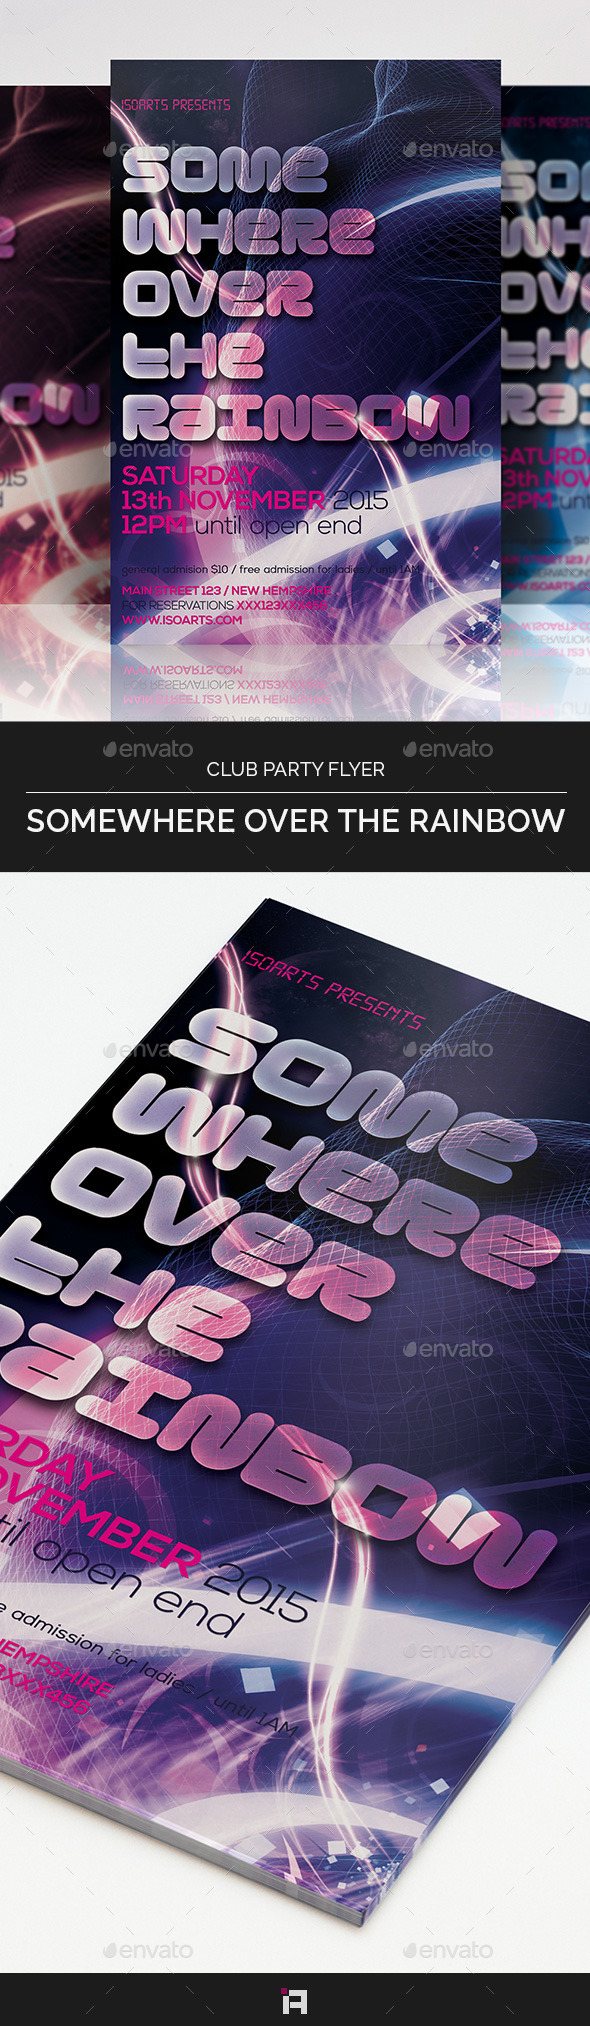 GraphicRiver Somewhere over the Rainbow Club Party Flyer 9177387